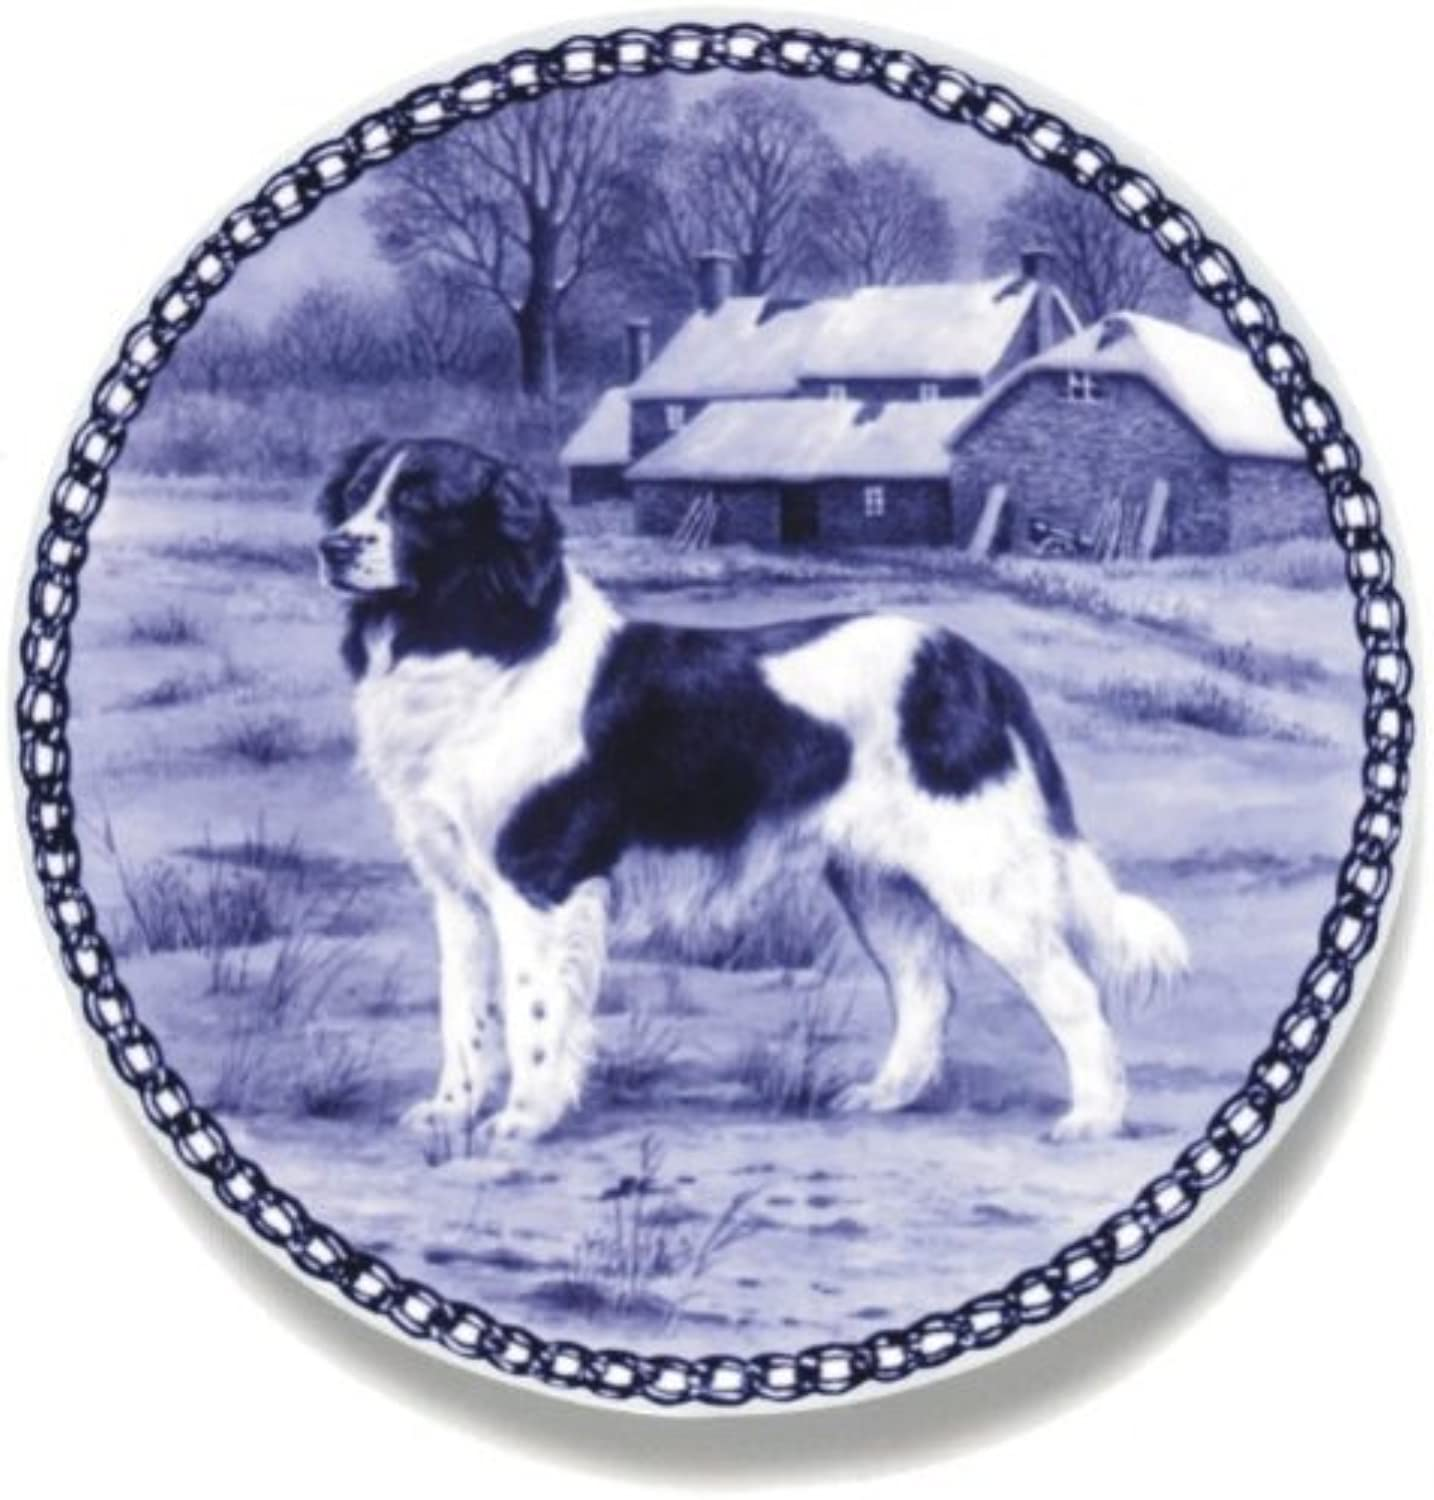 Drentse Patrijshond Lekven Design Dog Plate 19.5 cm  7.61 inches Made in Denmark NEW with certificate of origin PLATE  7454